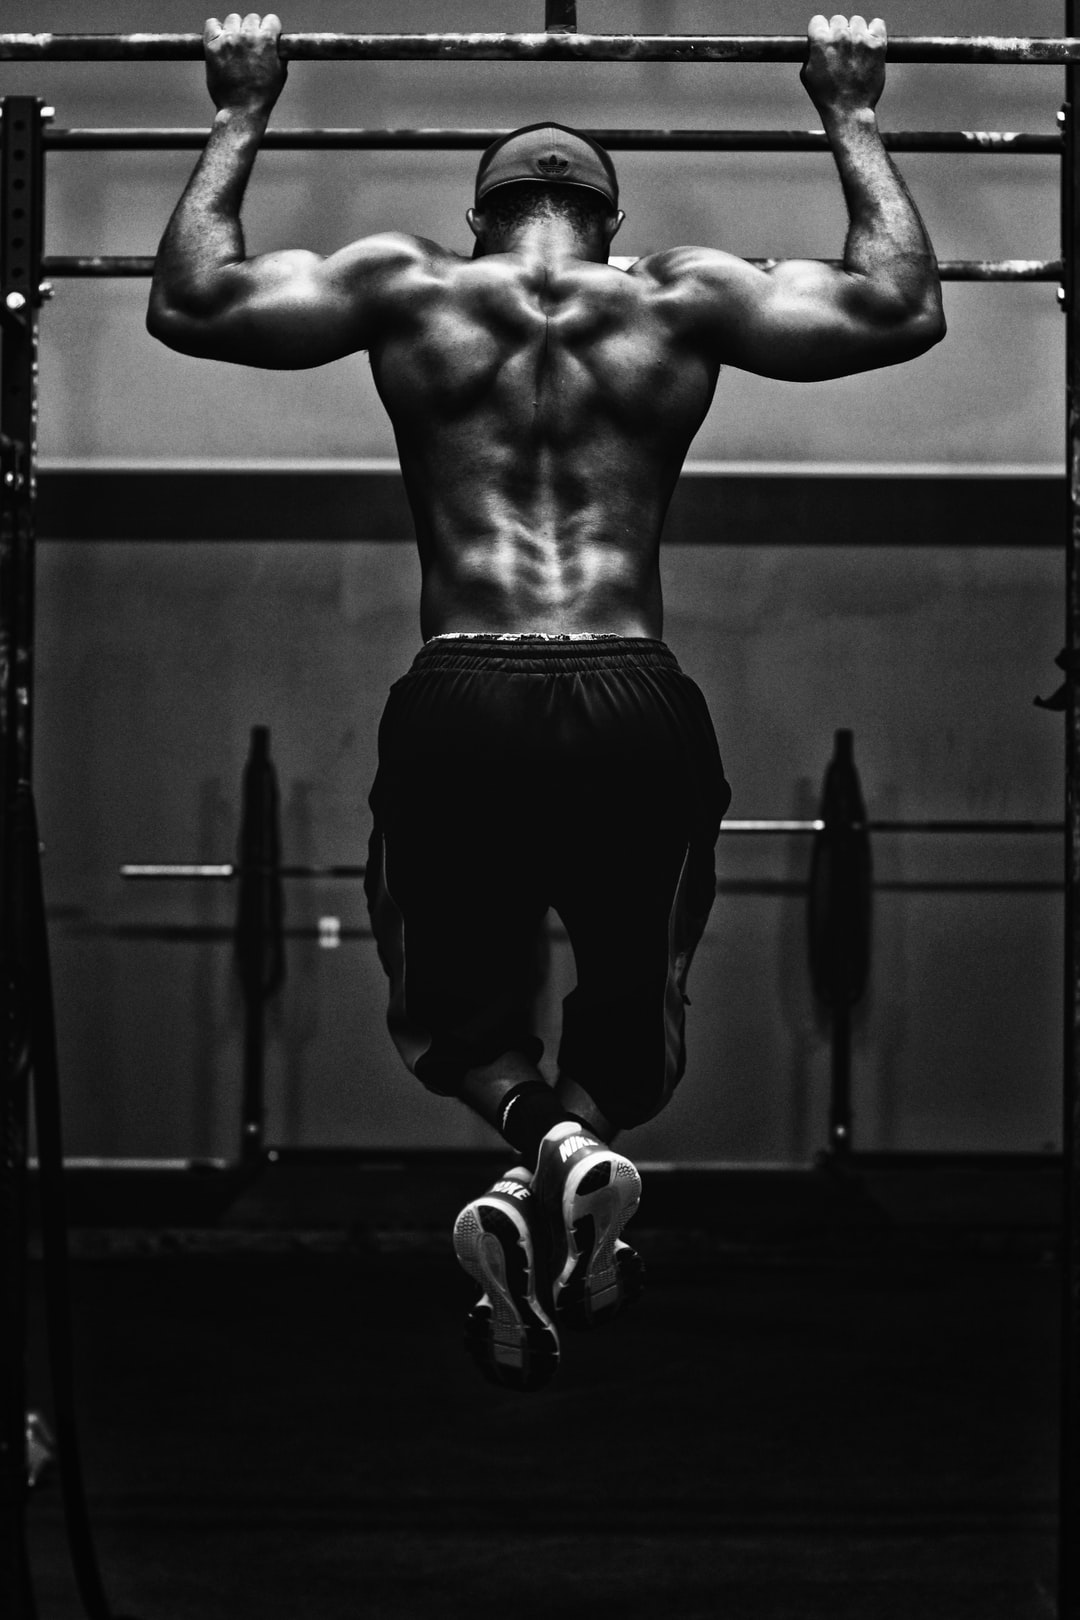 100 Gym Pictures Hq Download Free Images On Unsplash